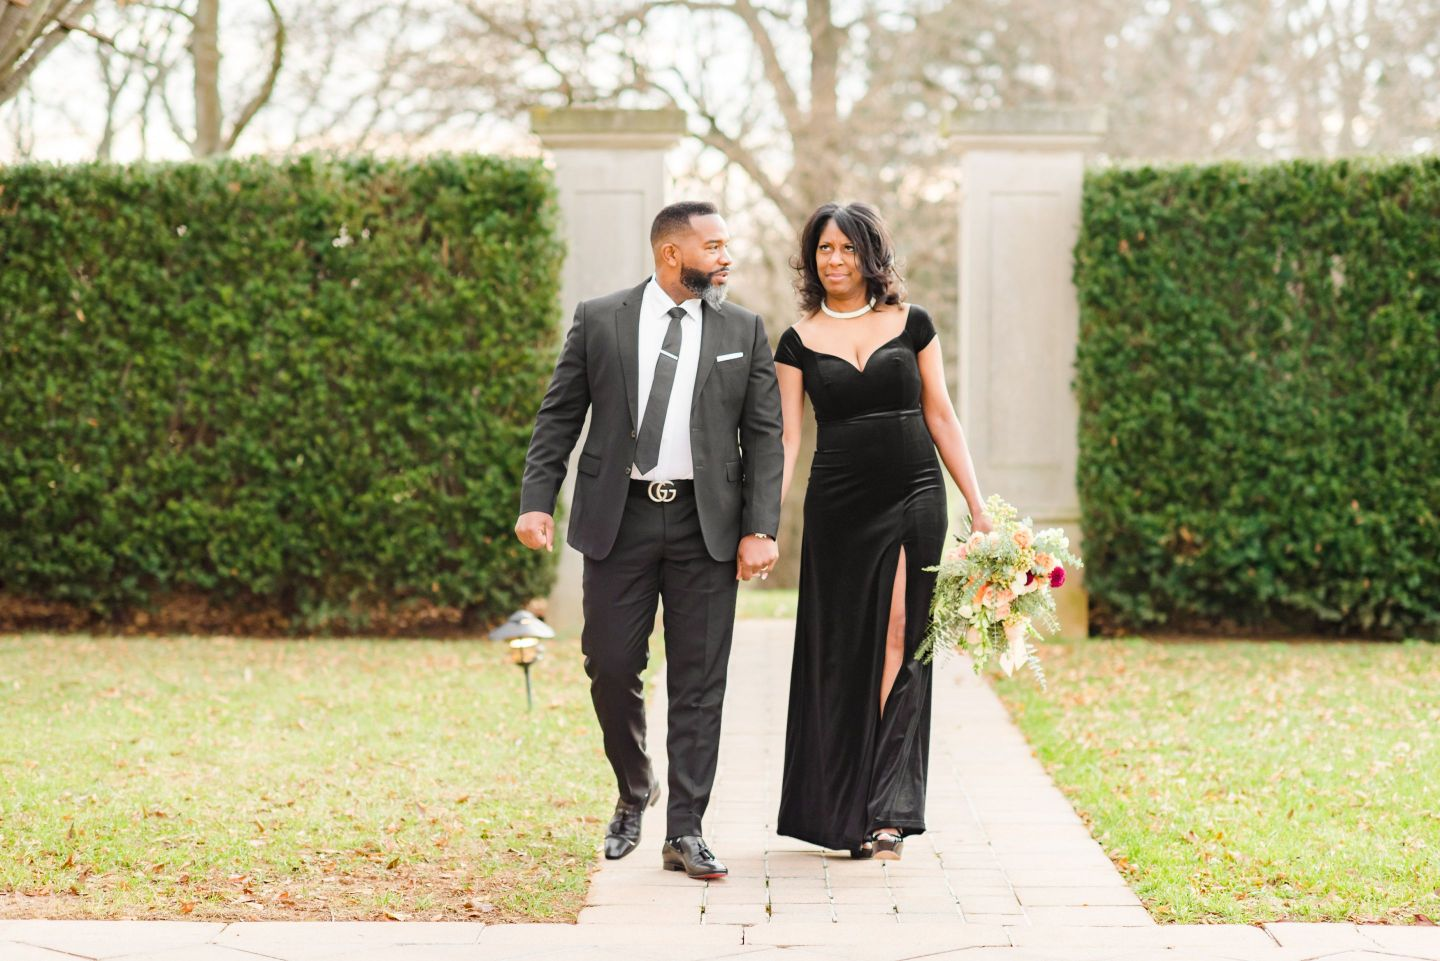 gaines2018-128-1440x961 Southern Black Love: 25 Anniversary Shoot with the Gaines Family